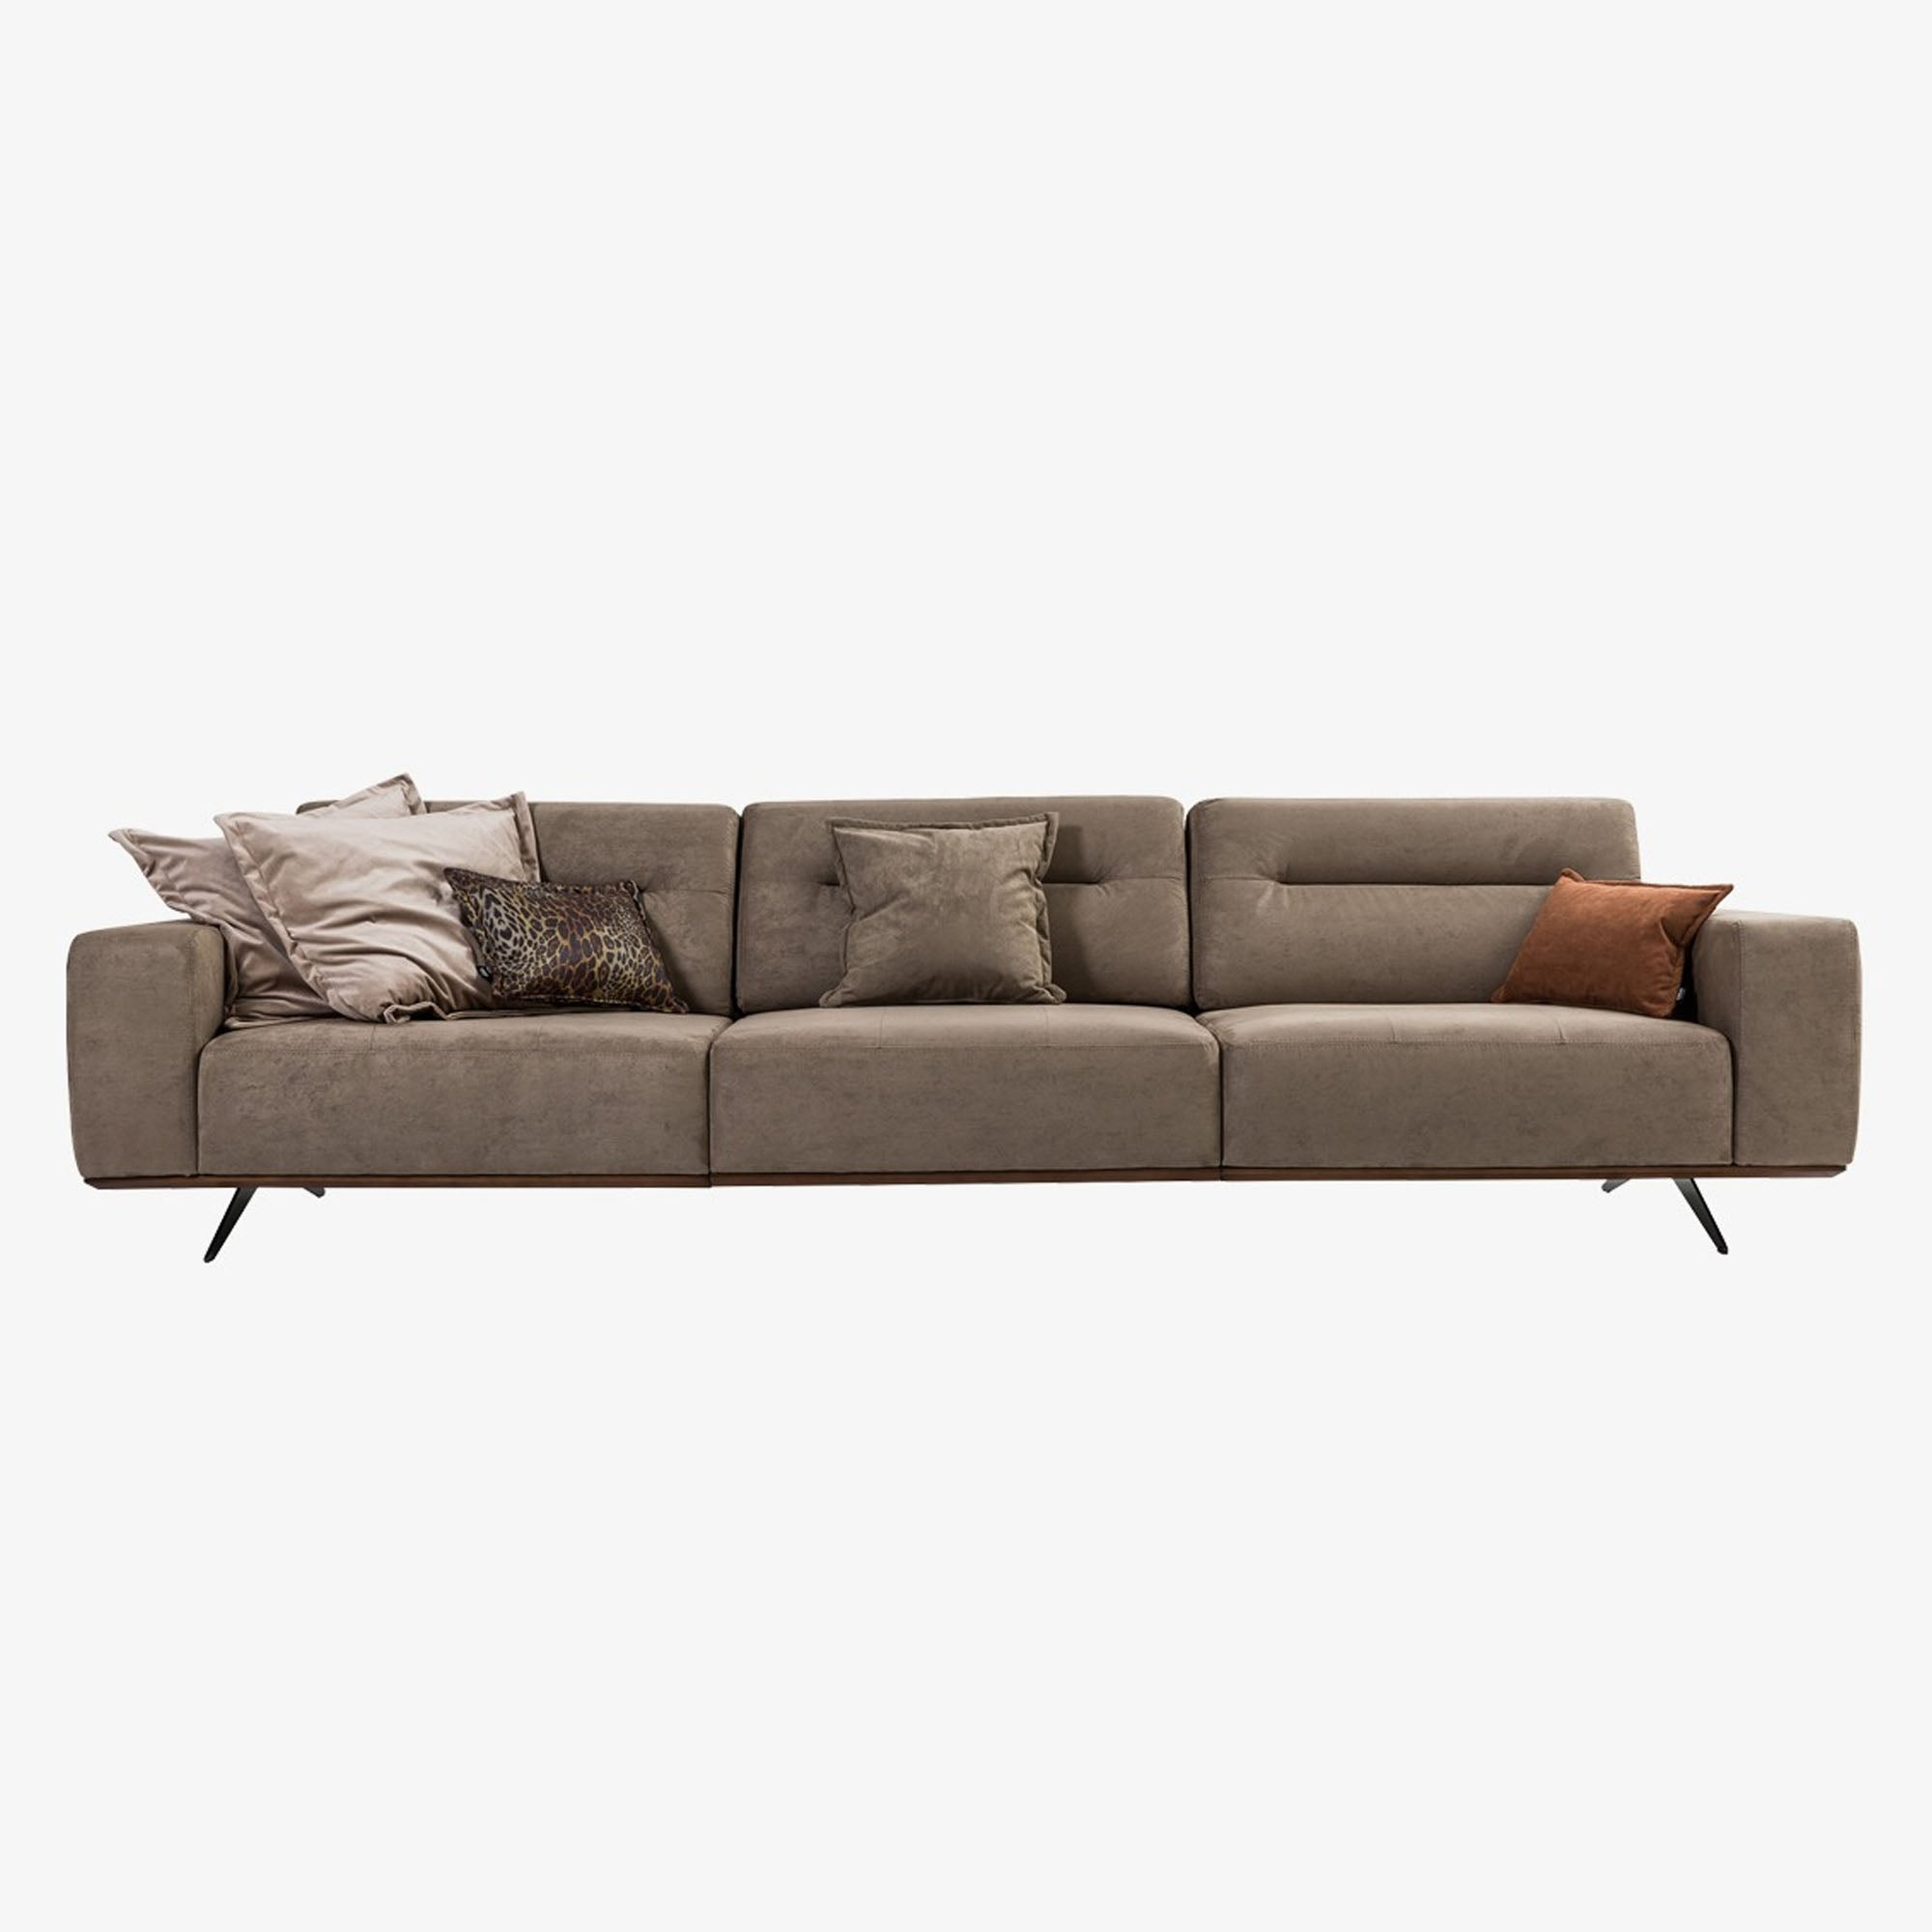 Casablanca   XL Sofa MOROCO0012-4S -  أريكة كازابلانكا XL - Shop Online Furniture and Home Decor Store in Dubai, UAE at ebarza